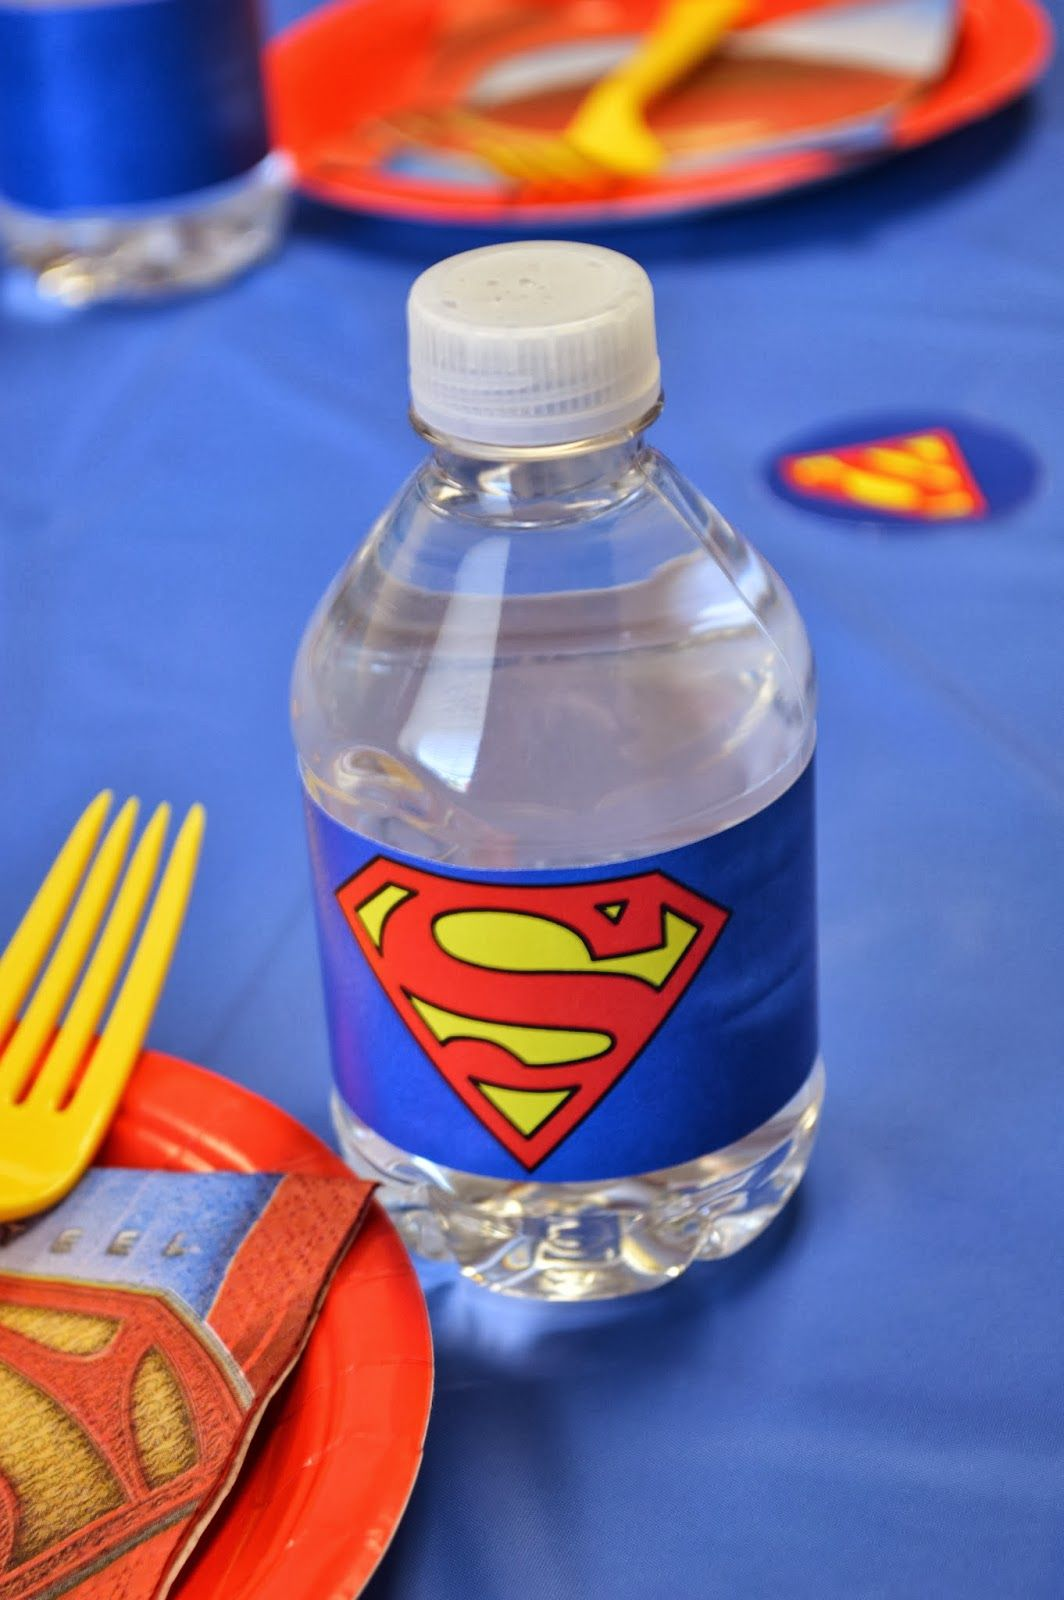 Superman Party Ideas  Superman Party Ideas  Pinterest  Birthdays ...